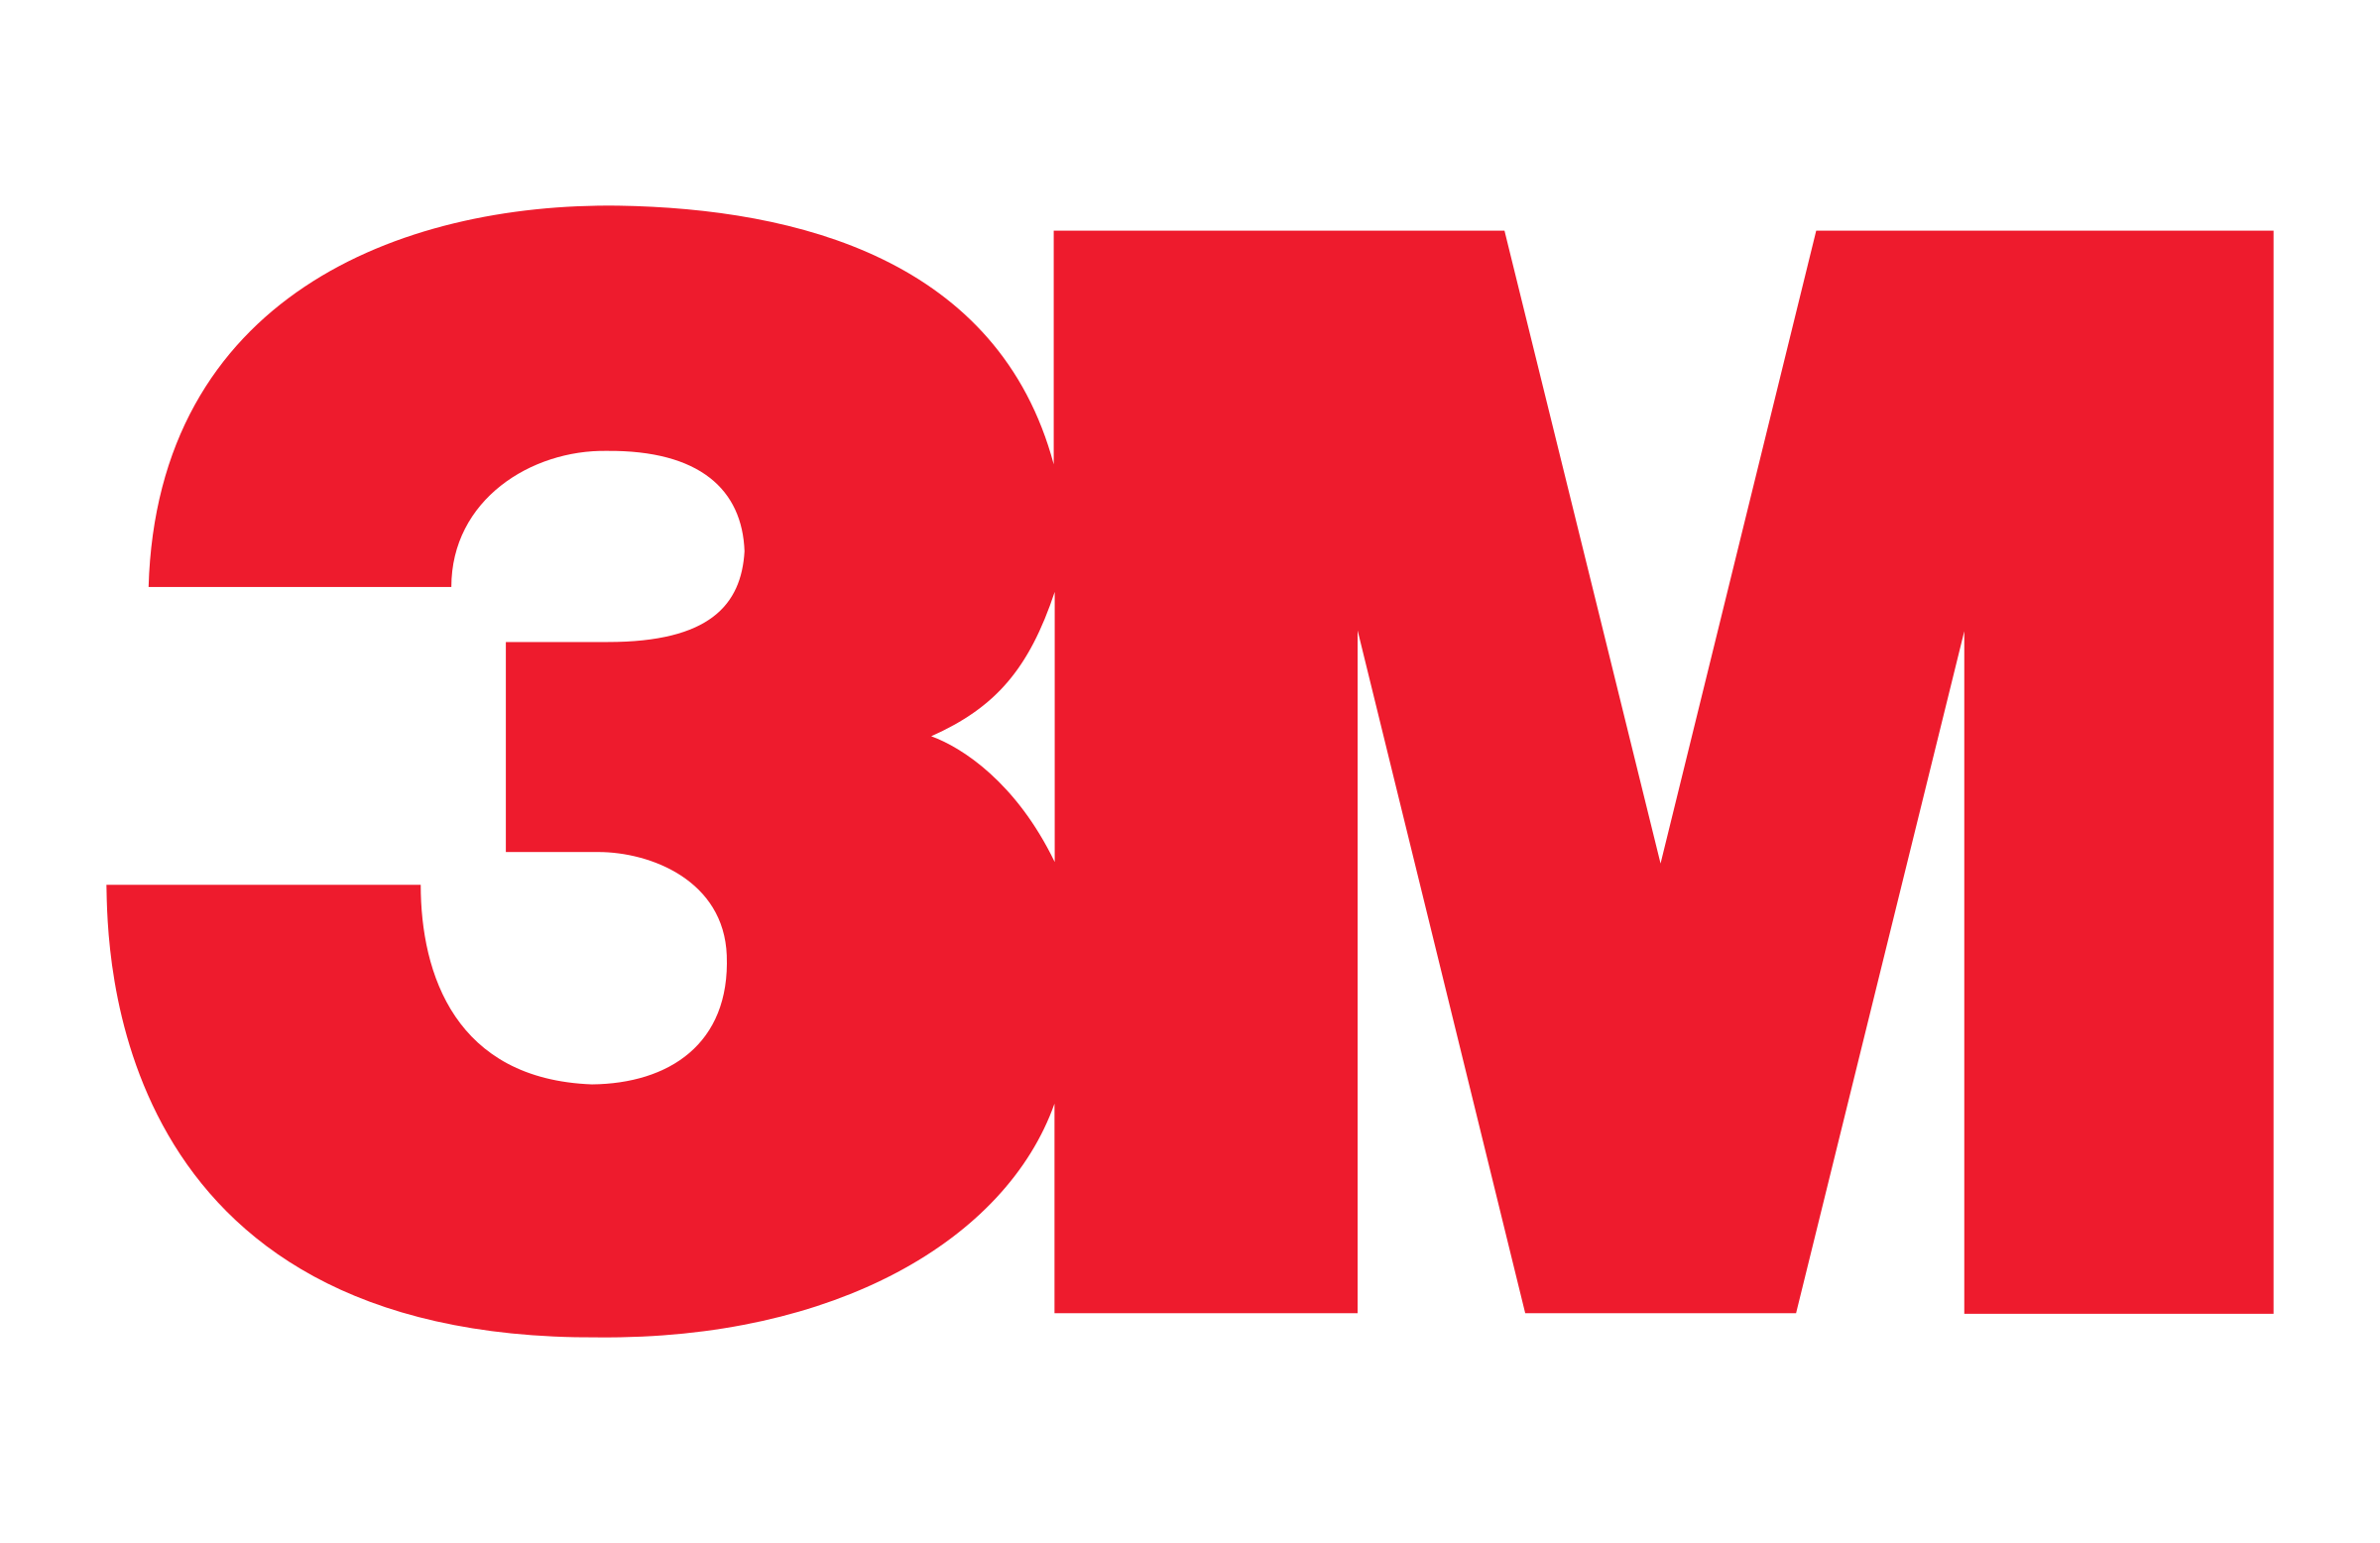 3m Logo Png Transparent Construction Equipment Amp Supply